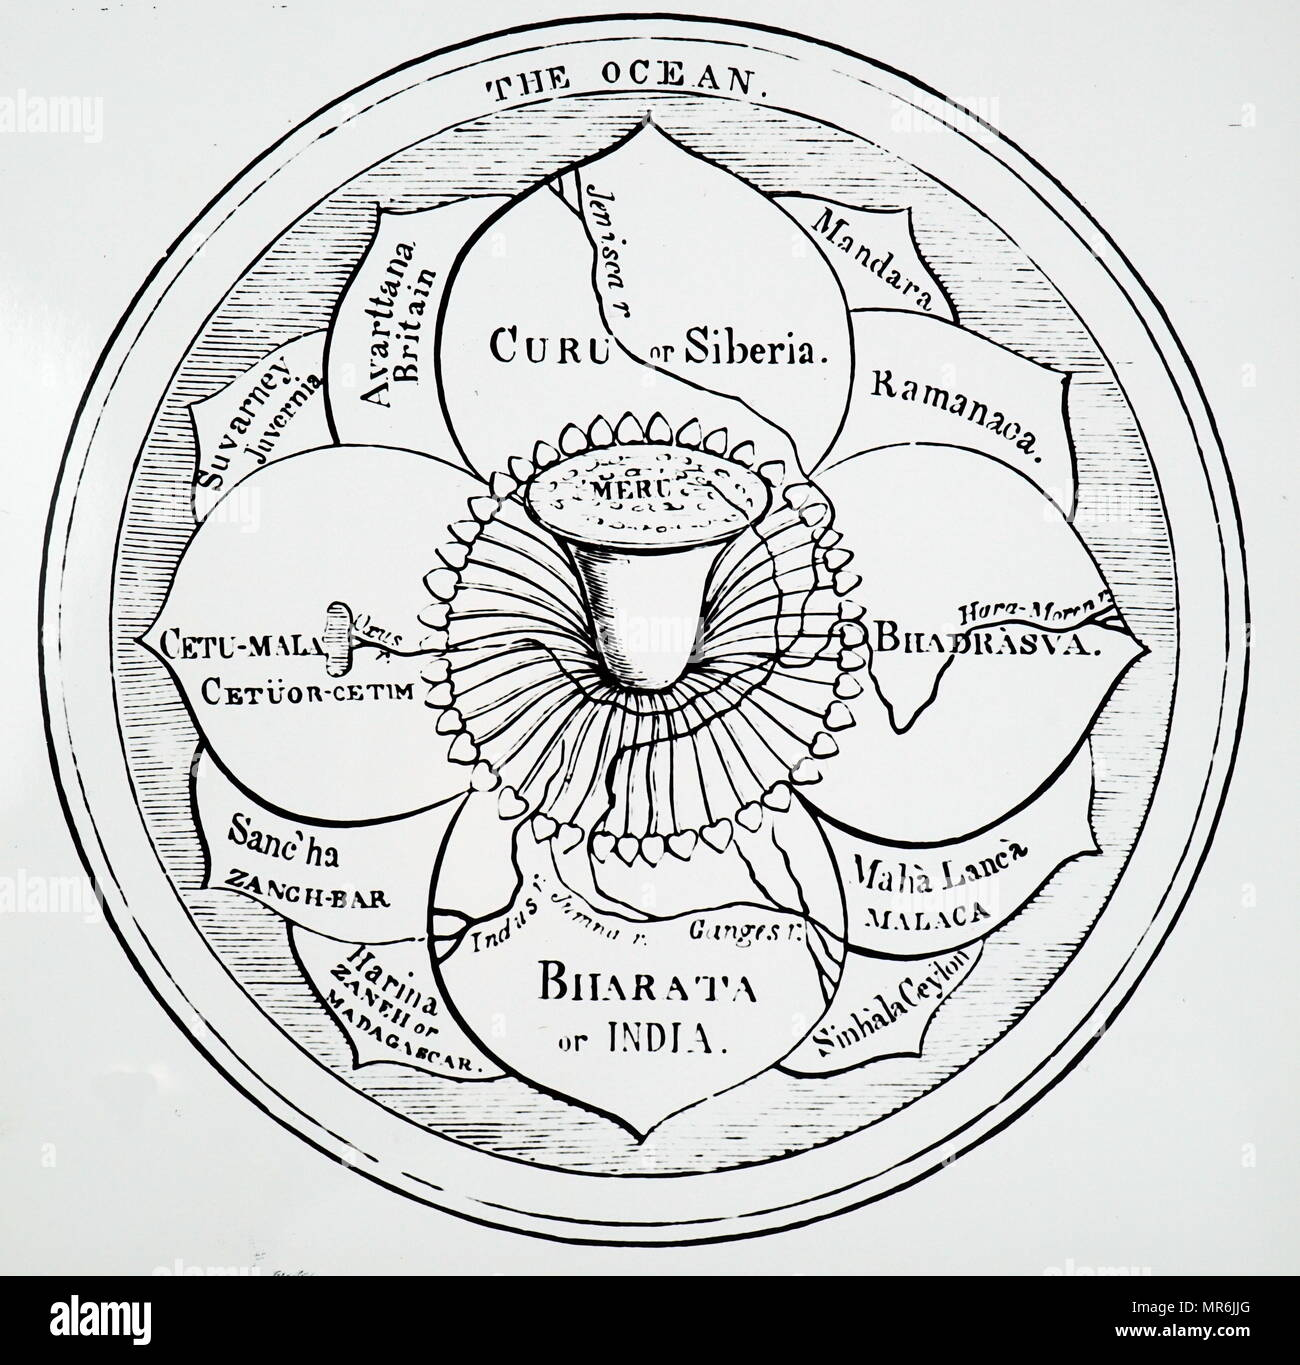 An early depicting of the Hindu system of the universe. The abode of the gods, Meru, is in the centre - the flower of the lotus. The countries known to the Brahmins are shown surrounding Meru, then there is an area of sea and ocean. The Earth is thought of as a flat disk. Dated 17th century - Stock Image